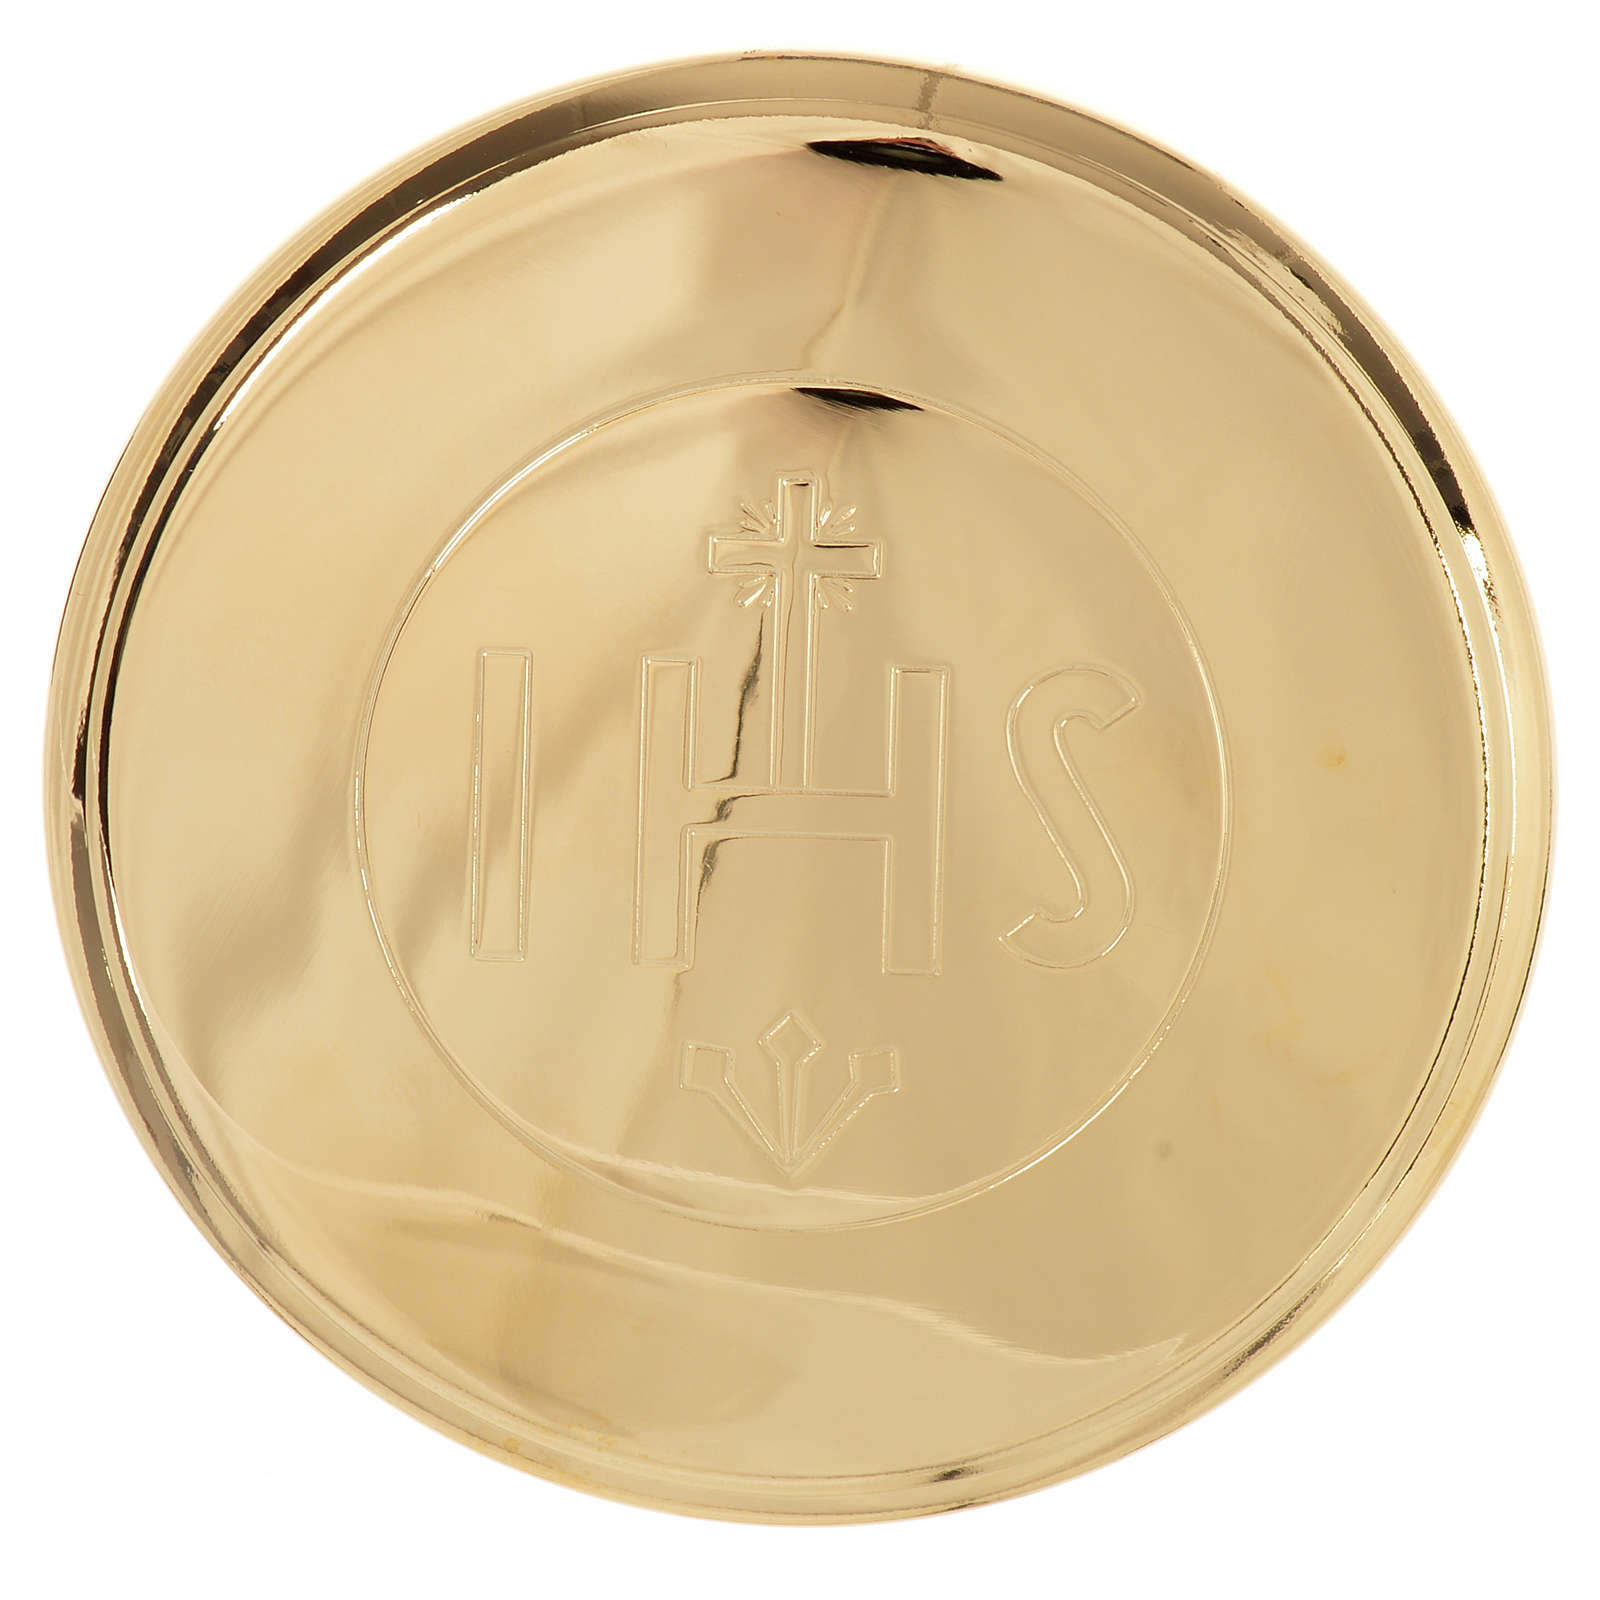 Golden brass pyx with IHS engraving, 7cm diameter 3